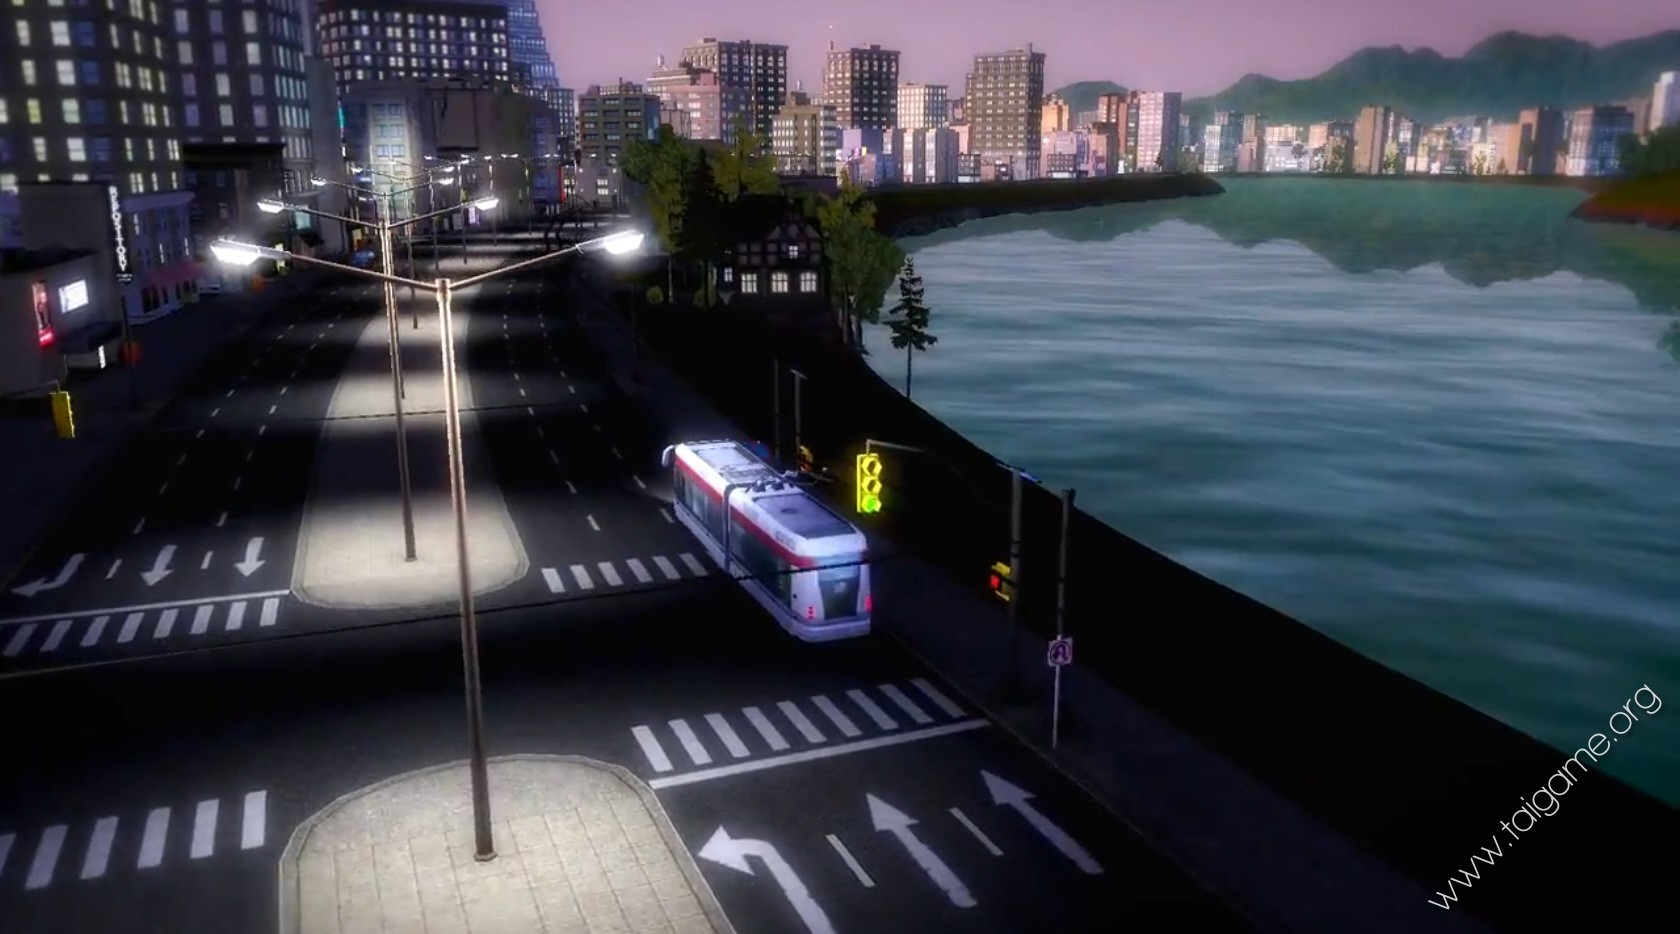 17.99 USD. Windows, Mac OS. The sequel to the popular mass transit simulation game Cities in Motion. The Modern Days introduces new features, like multiplayer game modes, day and night cycle, timetables and dynamic cities.